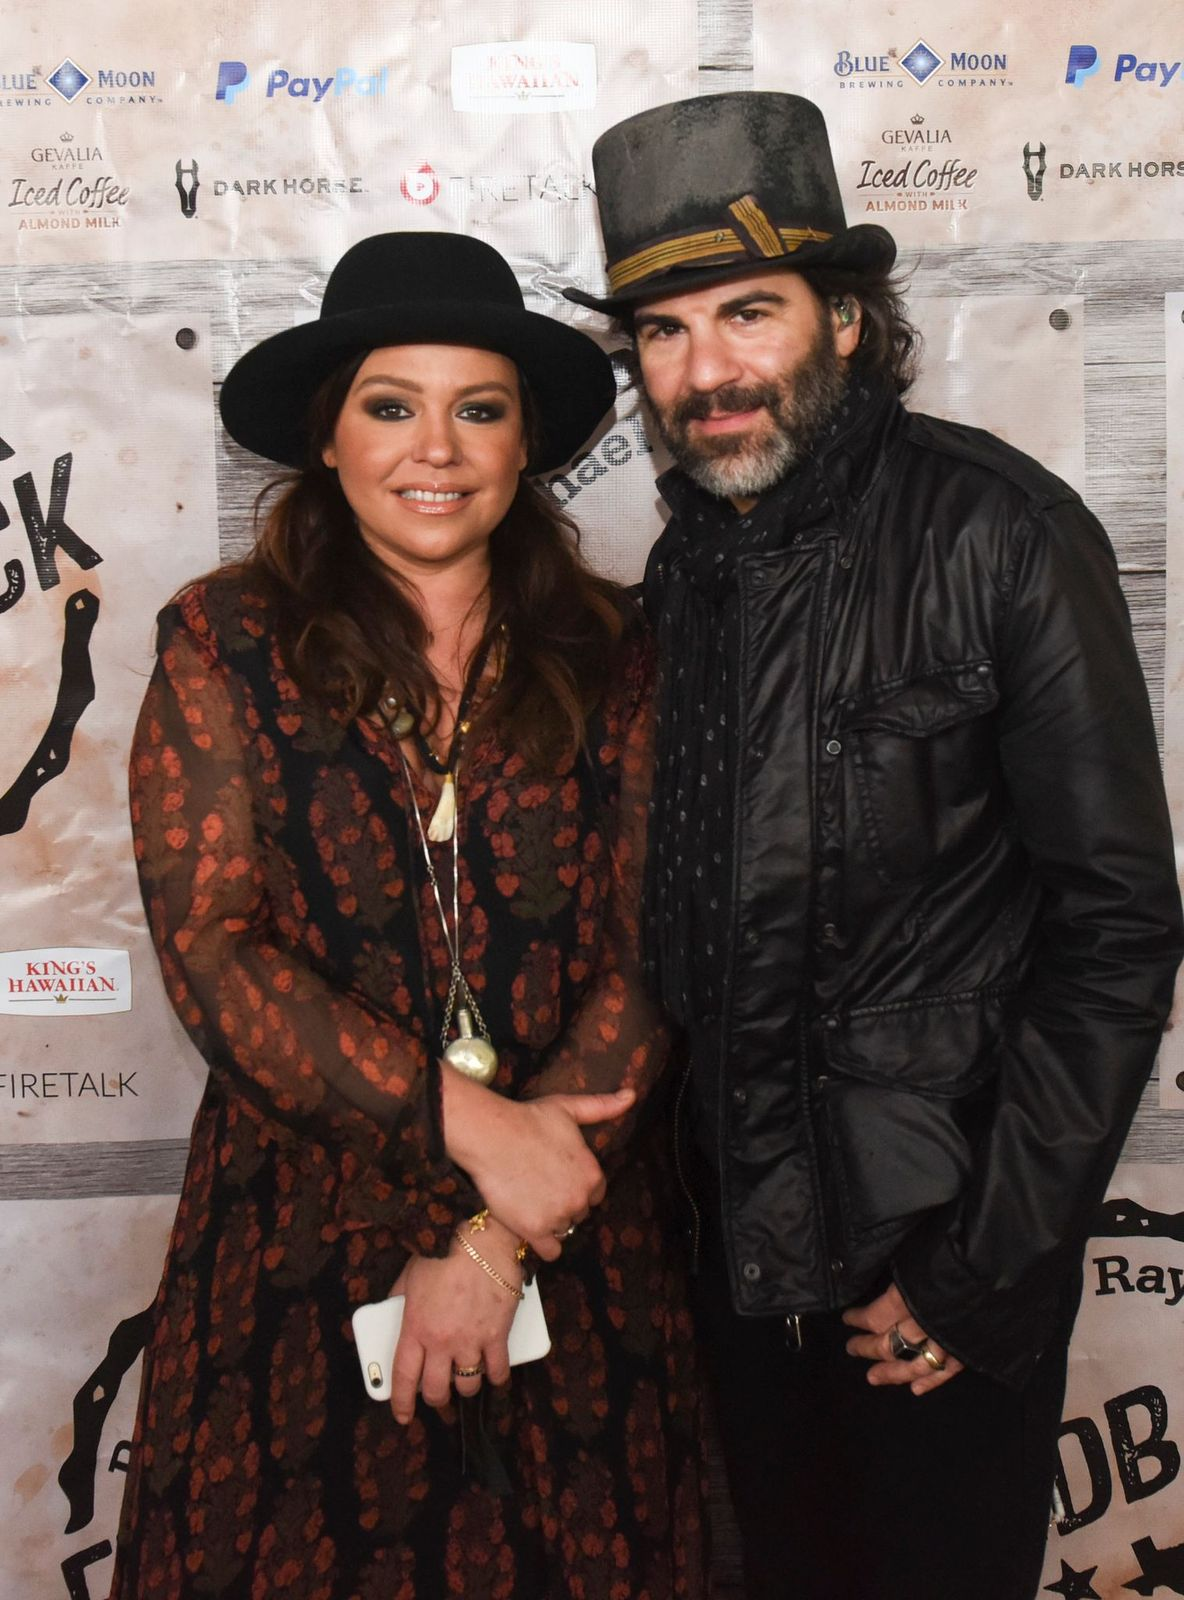 Rachael Ray and John Cusimano at the Gevalia Iced Coffee with Almond Milk at Rachael Ray's Feedback House on March 21, 2015, in Austin, Texas | Photo: Getty Images